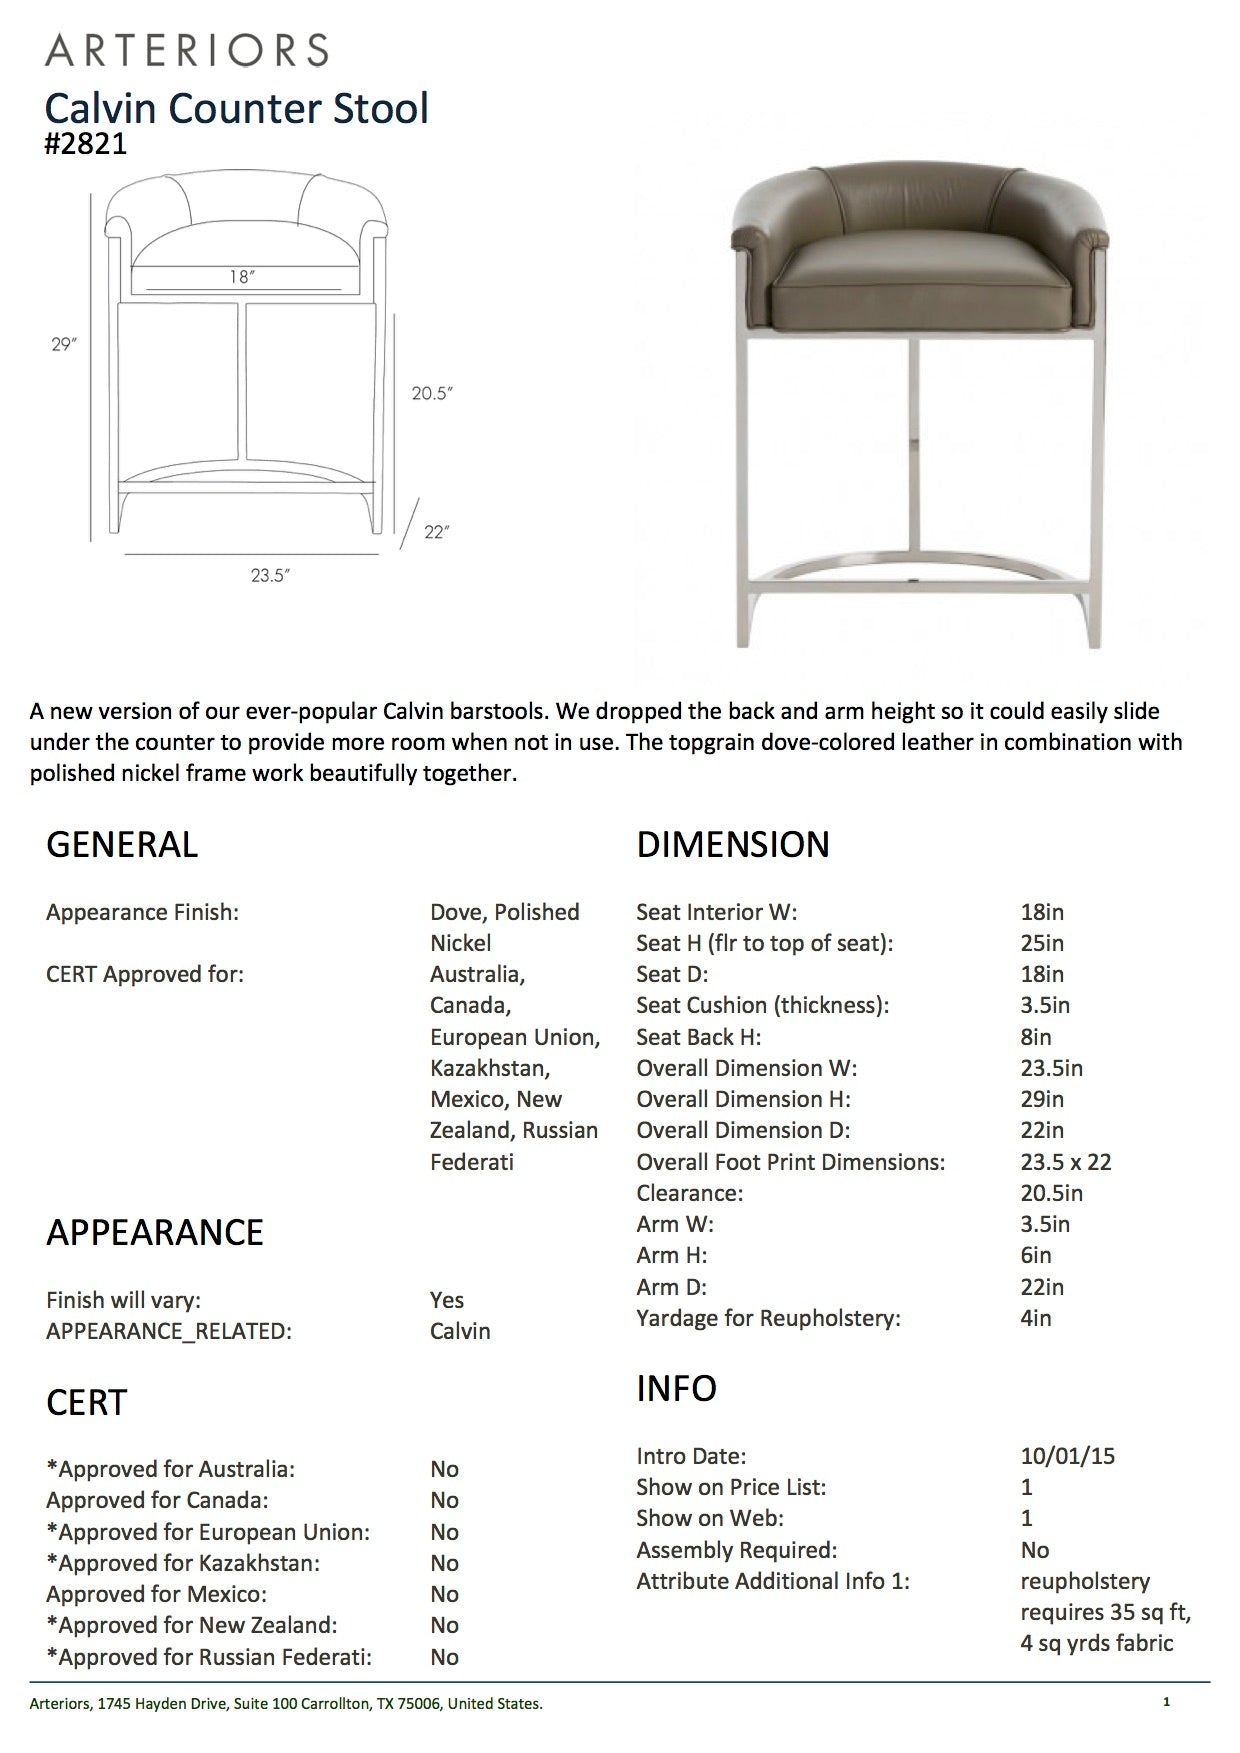 arteriors home calvin counter stool tearsheet